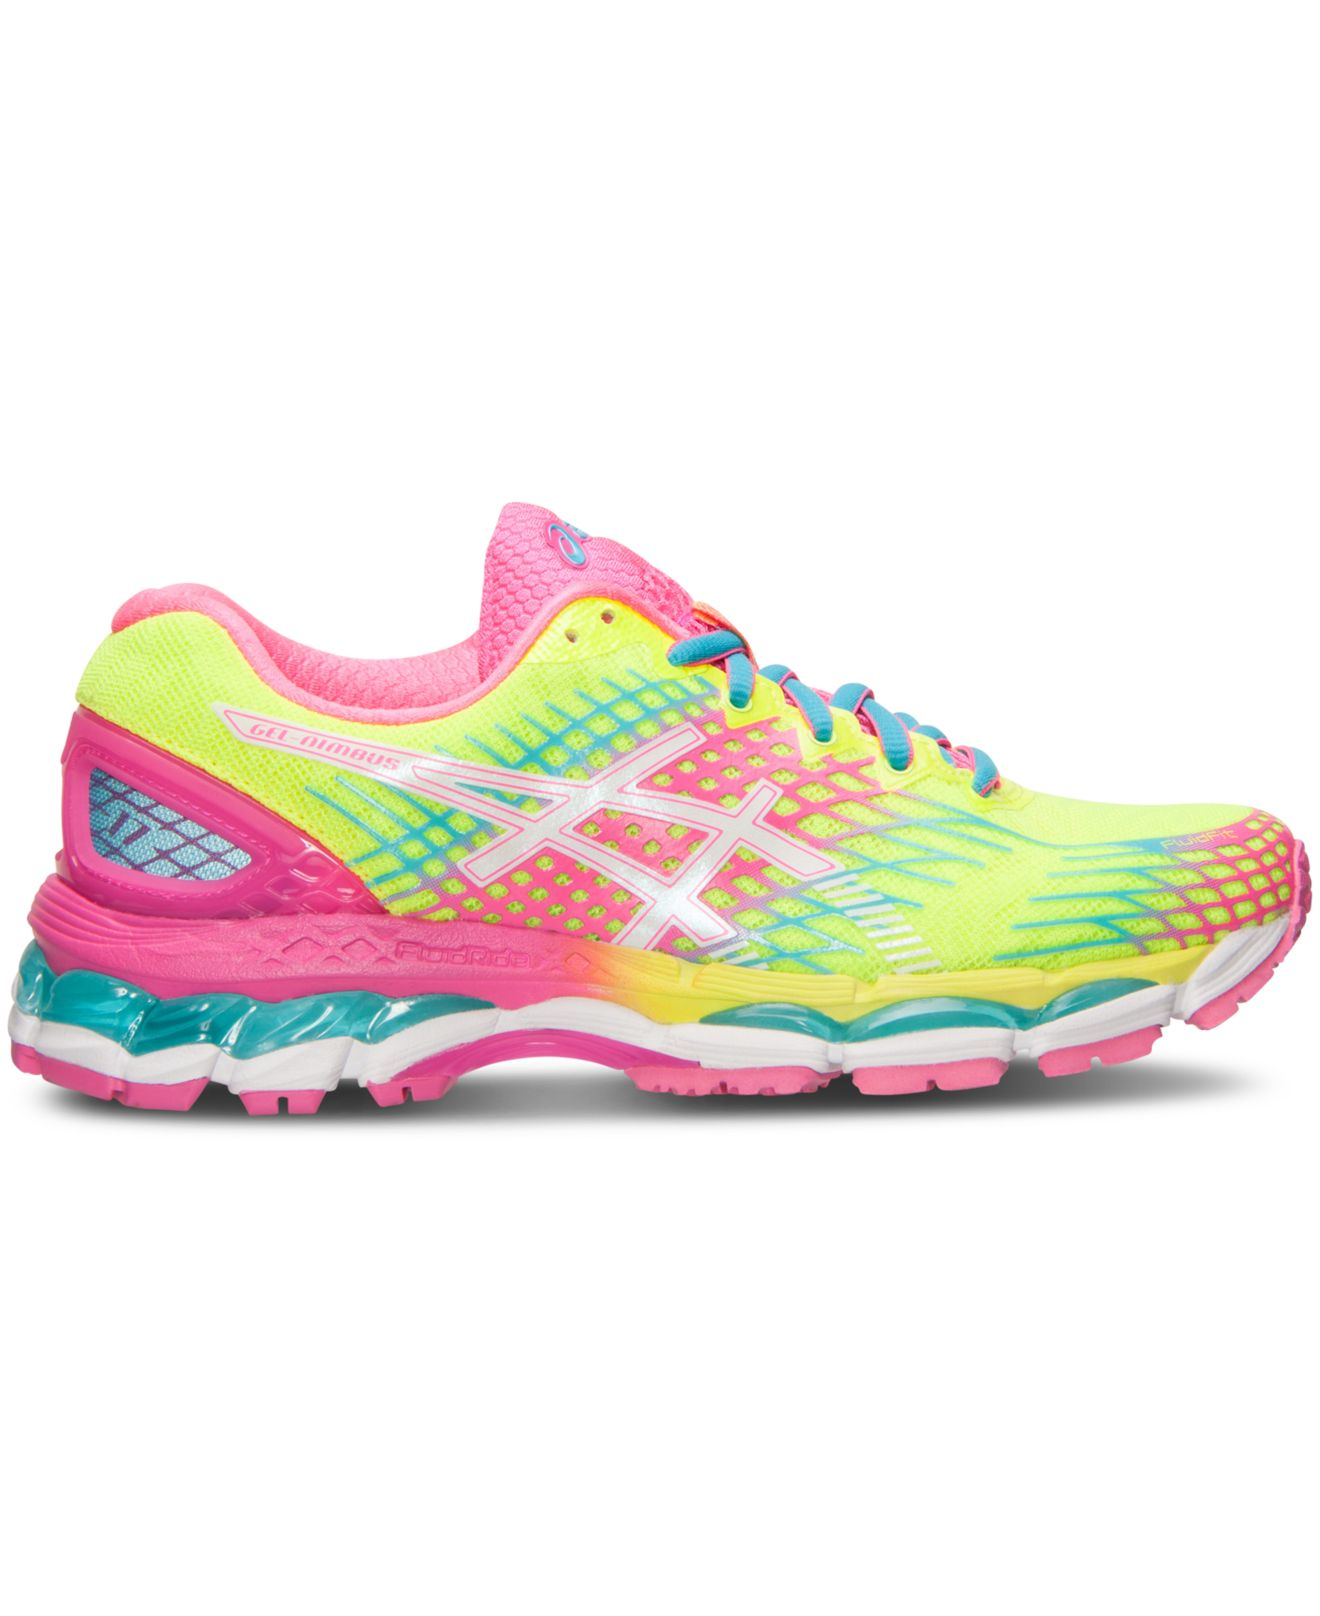 asics gel nimbus 17 yellow